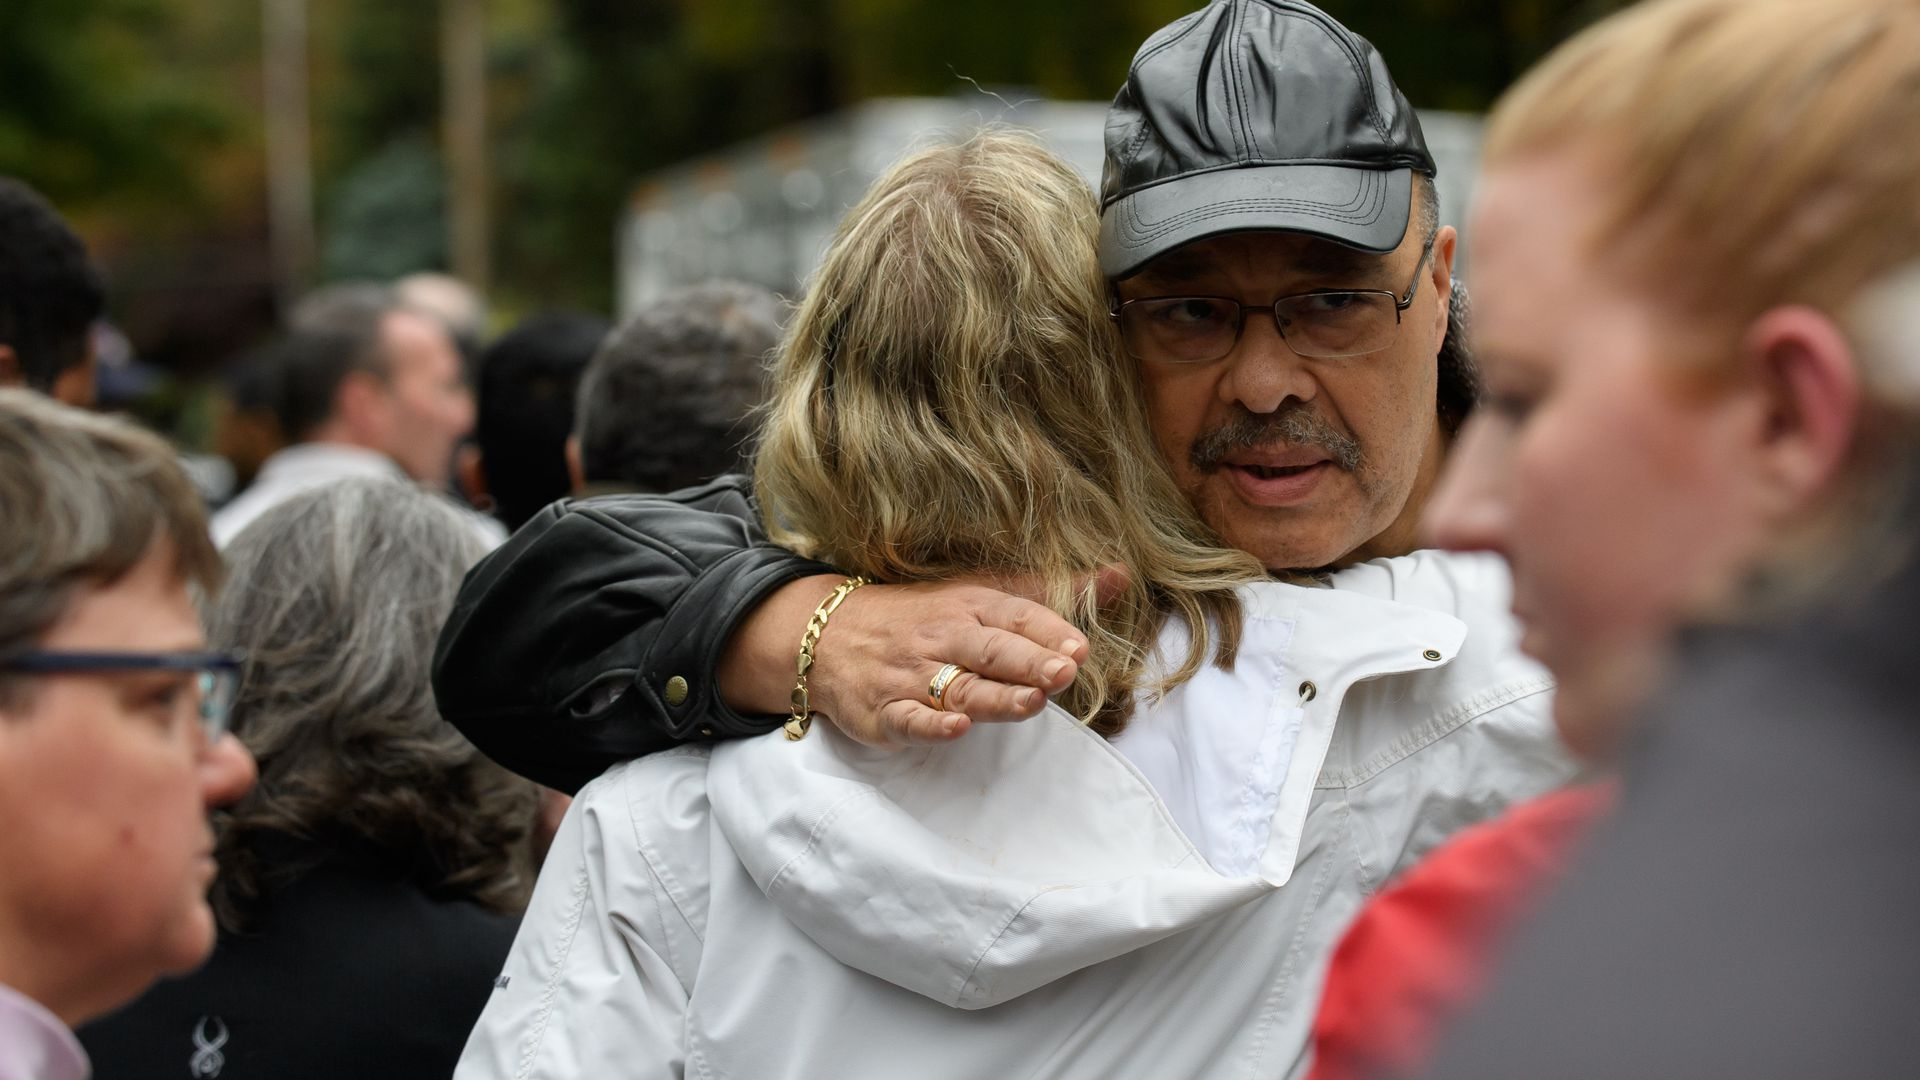 Man and woman hugging each other whlie at the crime scene of the pittsburgh shooting